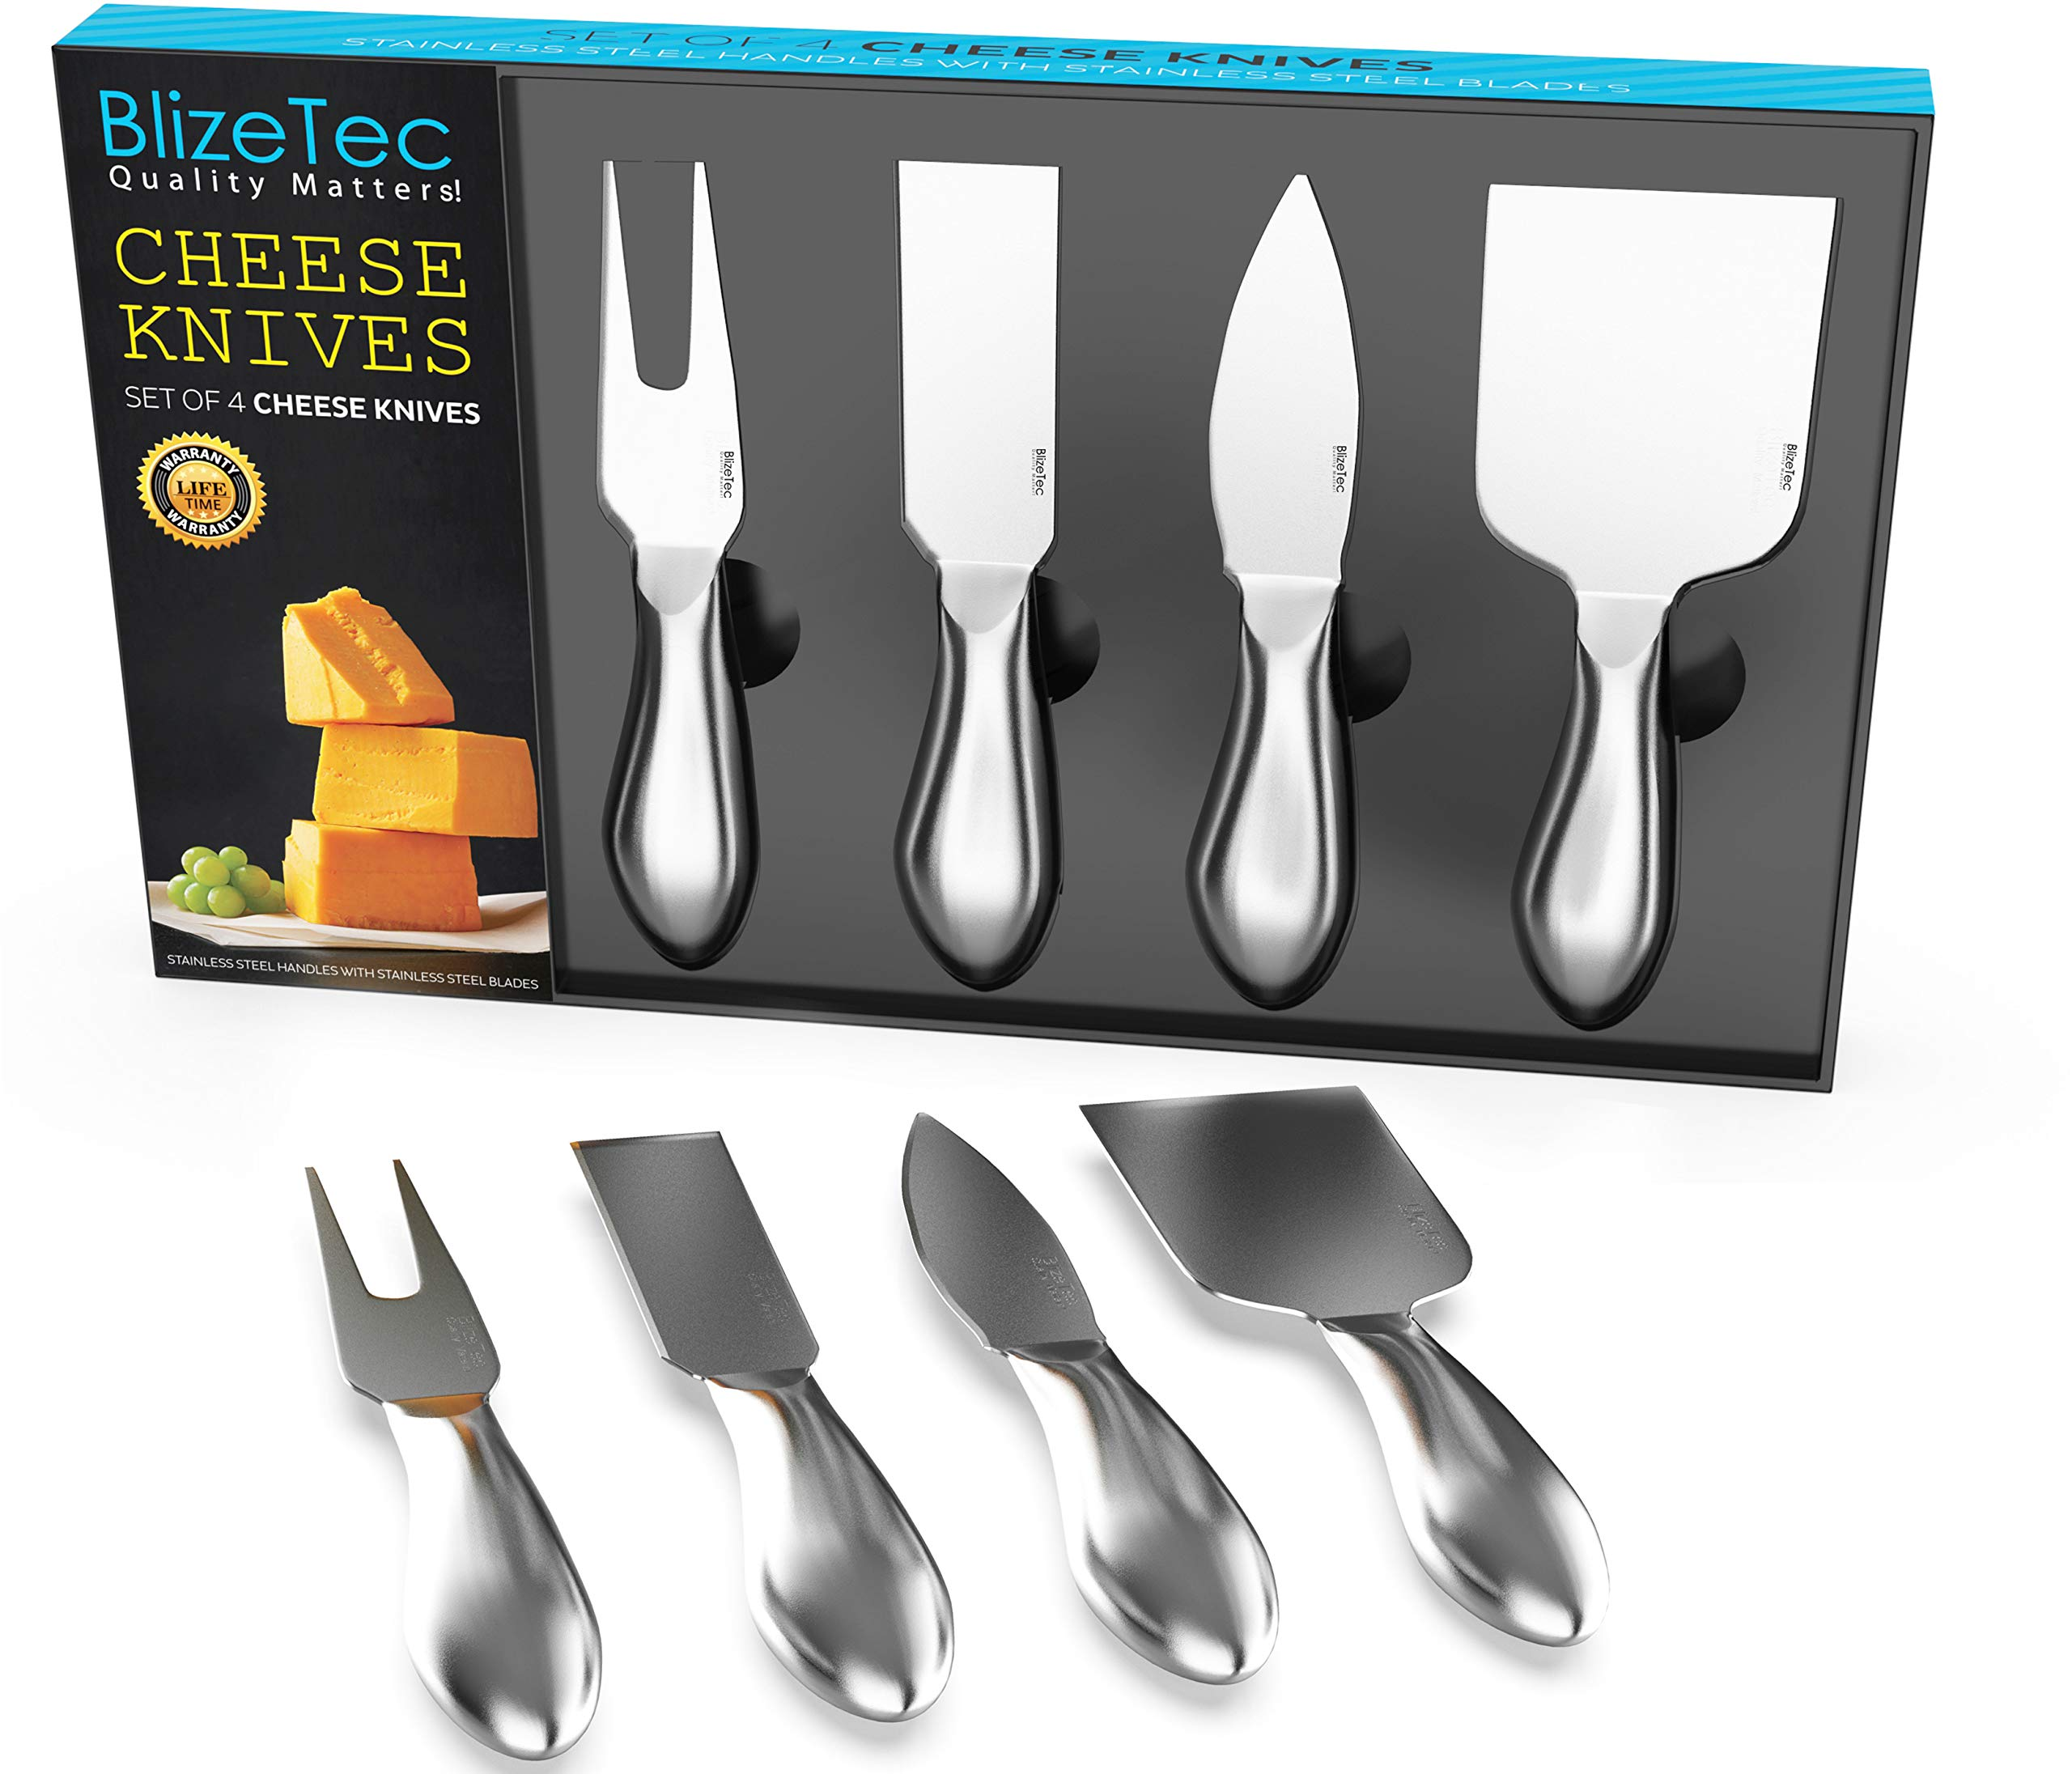 Cheese Knives: BlizeTec Cheese Slicer & Cutter Set (4 pcs) by BlizeTec